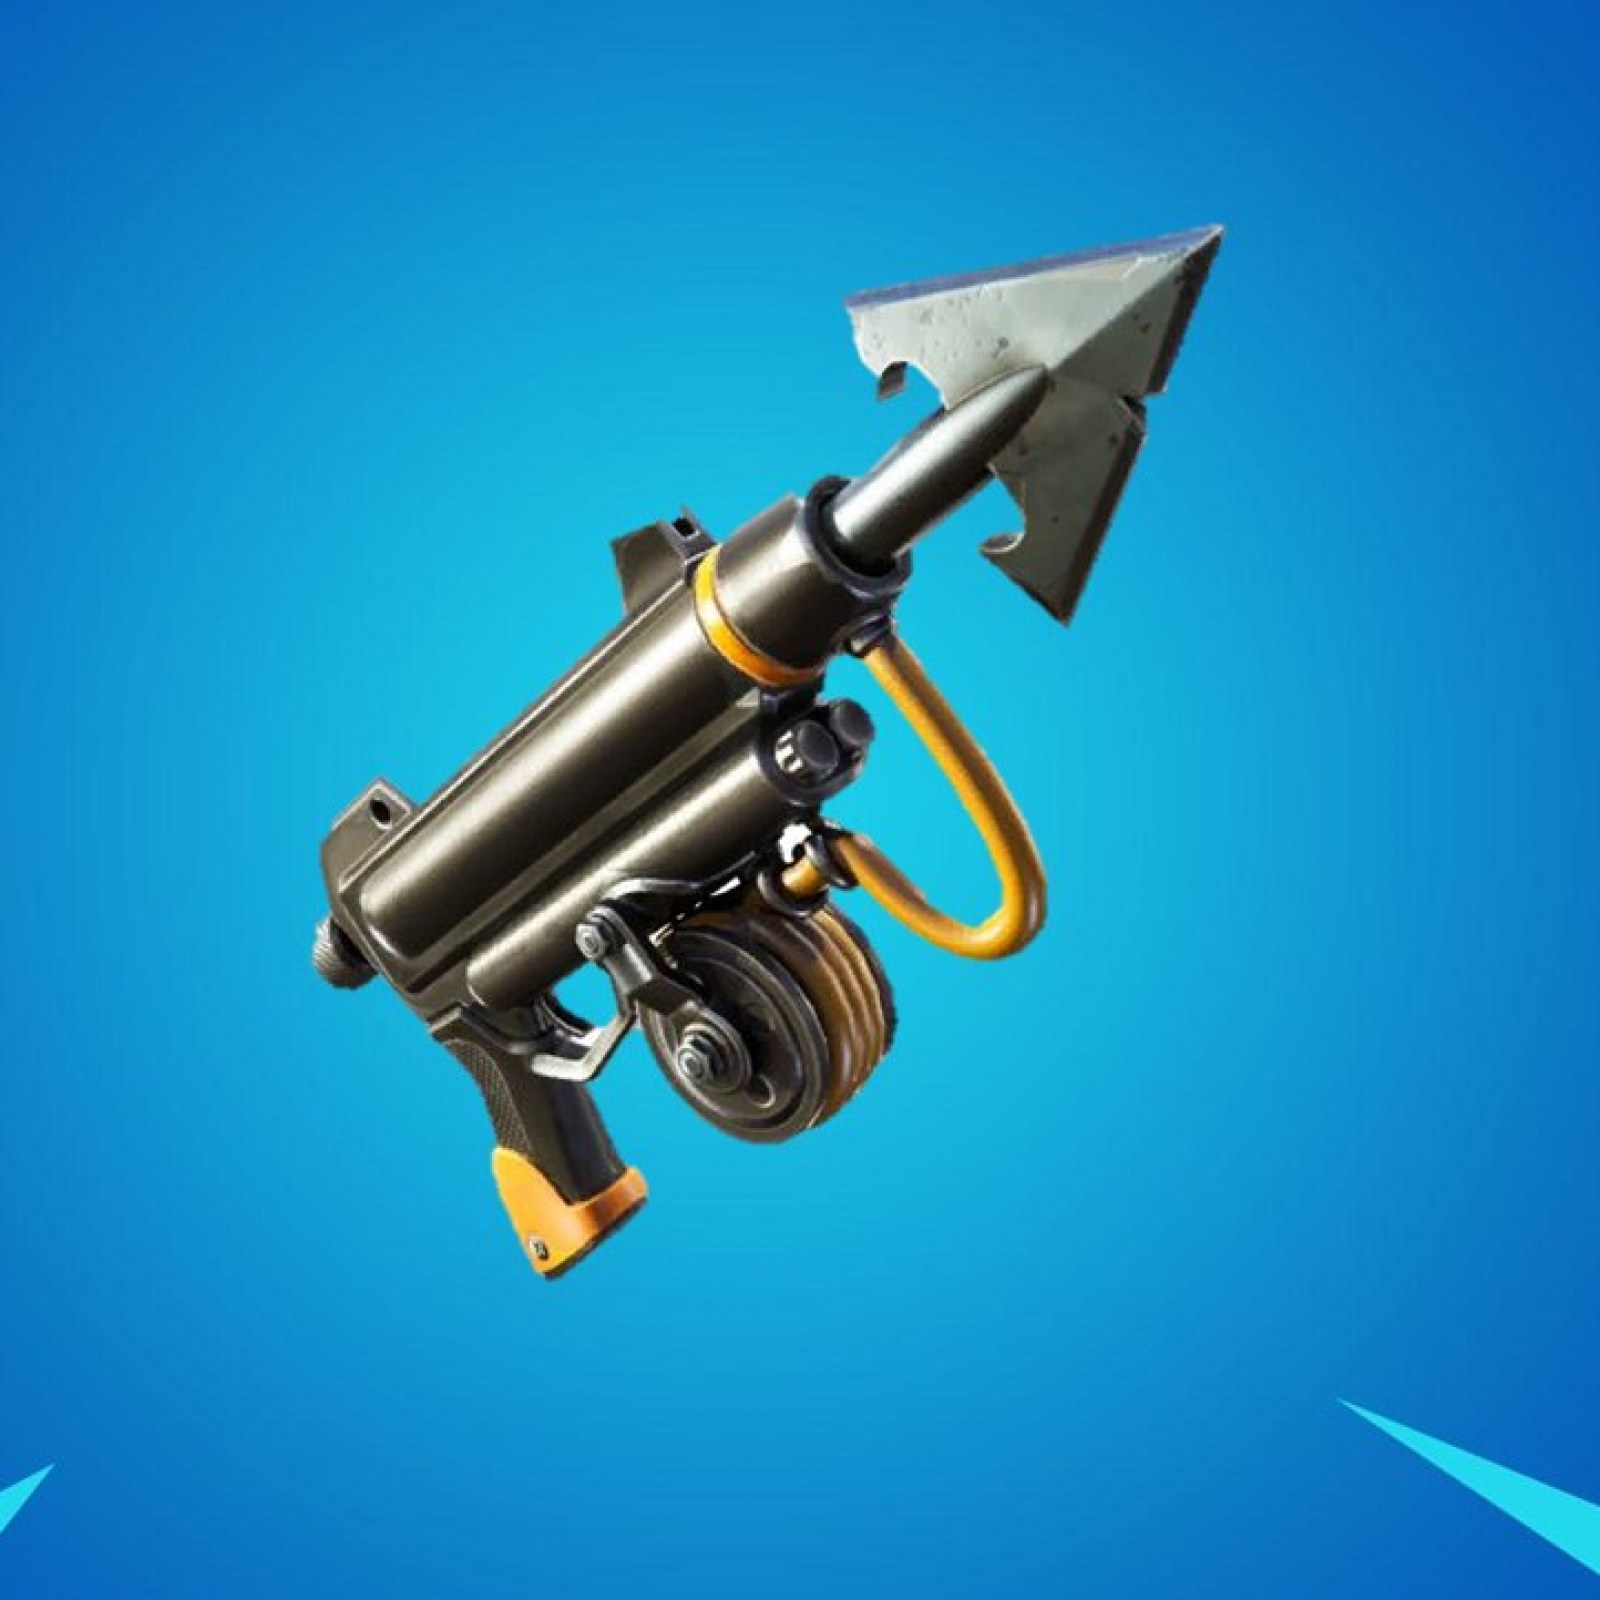 Fortnite Update 2 44 Fixes Hitching On Ps4 After 11 10 Patch Notes Update 2.86 simply adresses some glitches that have cropped up on specific systems. fortnite update 2 44 fixes hitching on